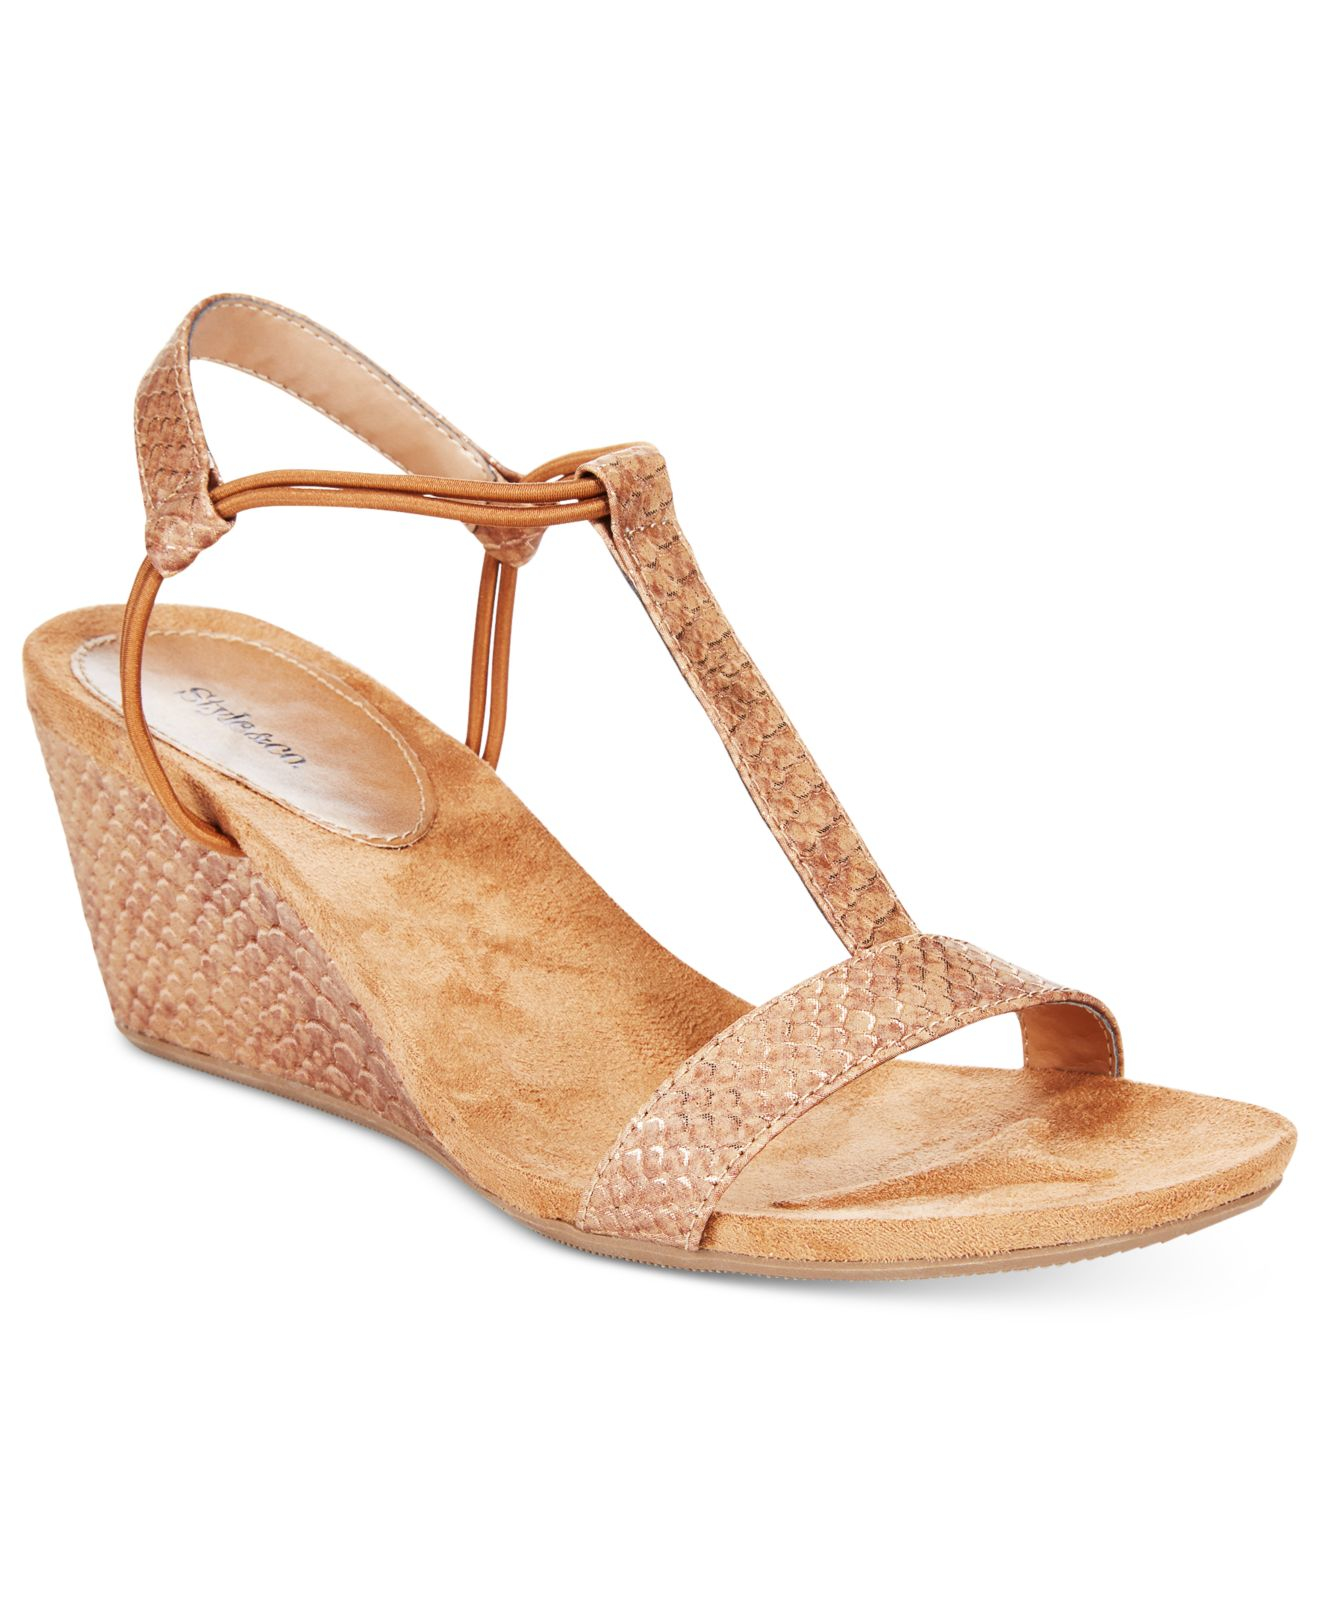 style co mulan wedge sandals only at macy s in beige